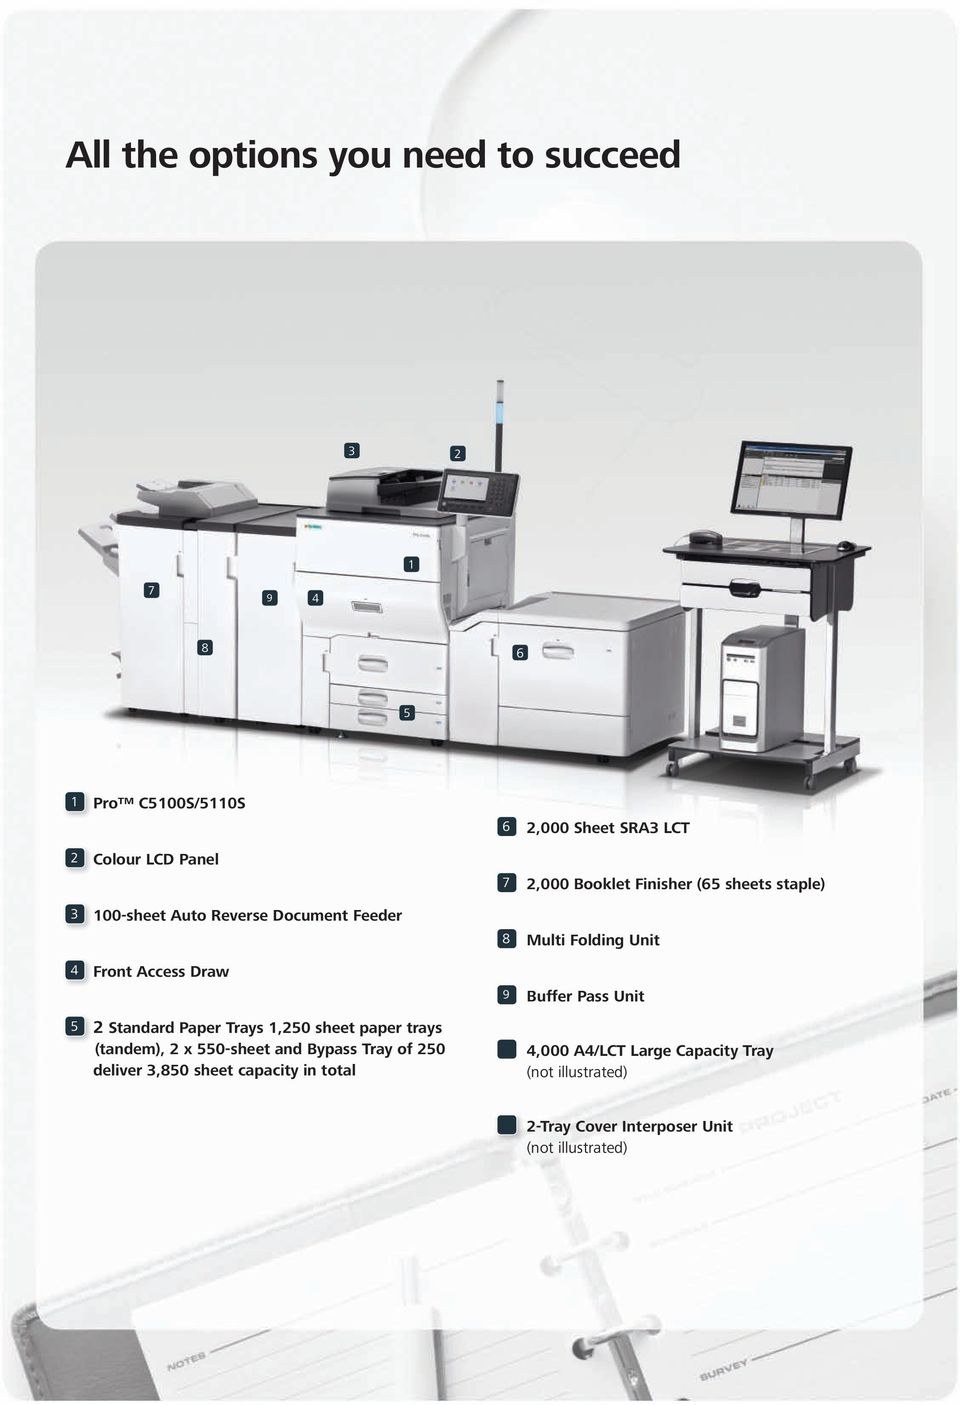 Tray of 250 deliver 3,850 sheet capacity in total 6 2,000 Sheet SRA3 LCT 7 2,000 Booklet Finisher (65 sheets staple) 8